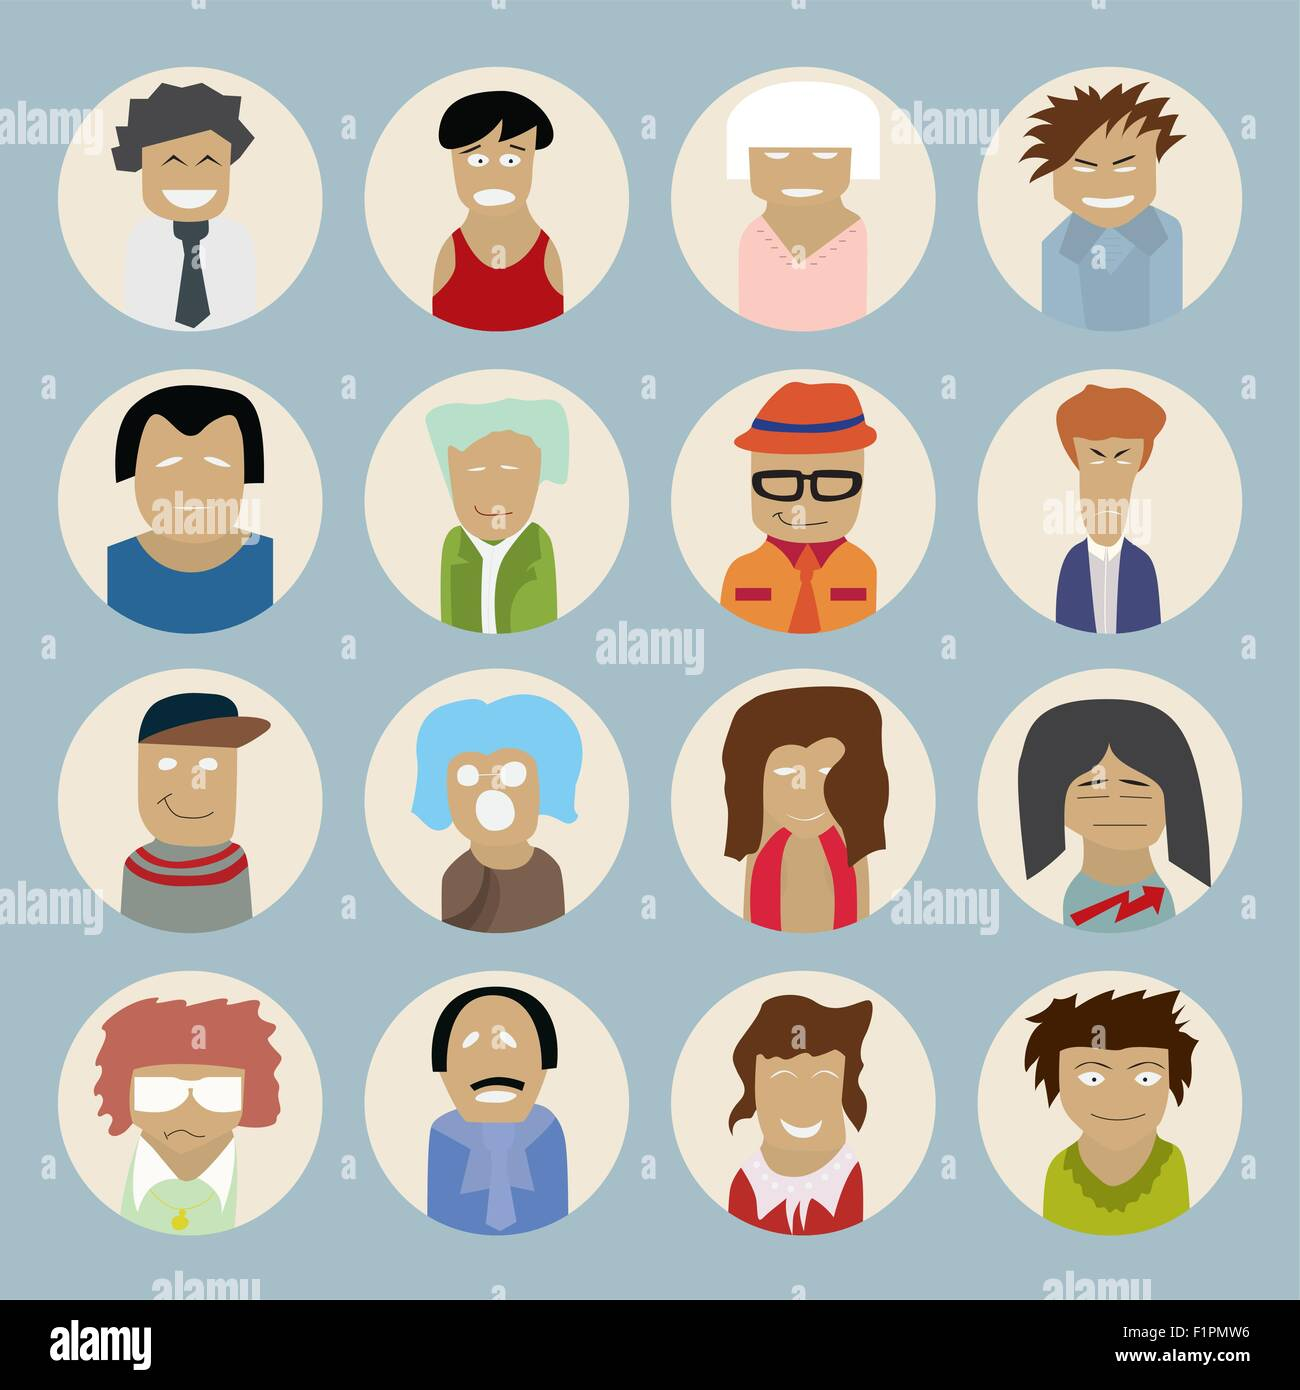 set of people icons in flat style with faces vector illustration of